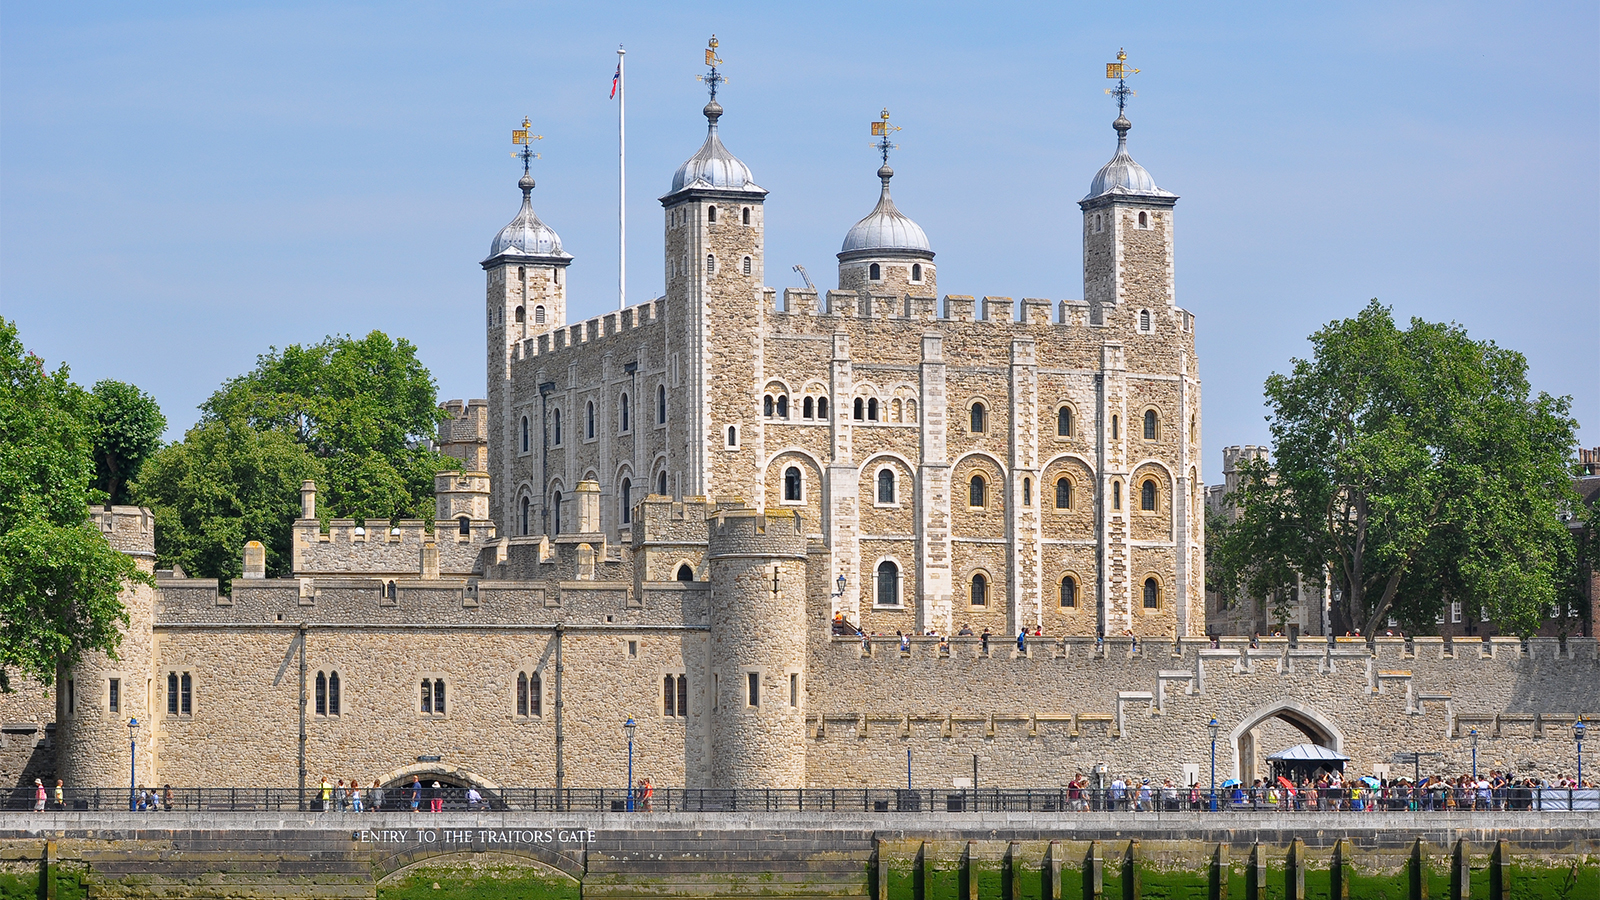 Historic Royal Palaces' Tower of London will welcome visitors as part of the campaign